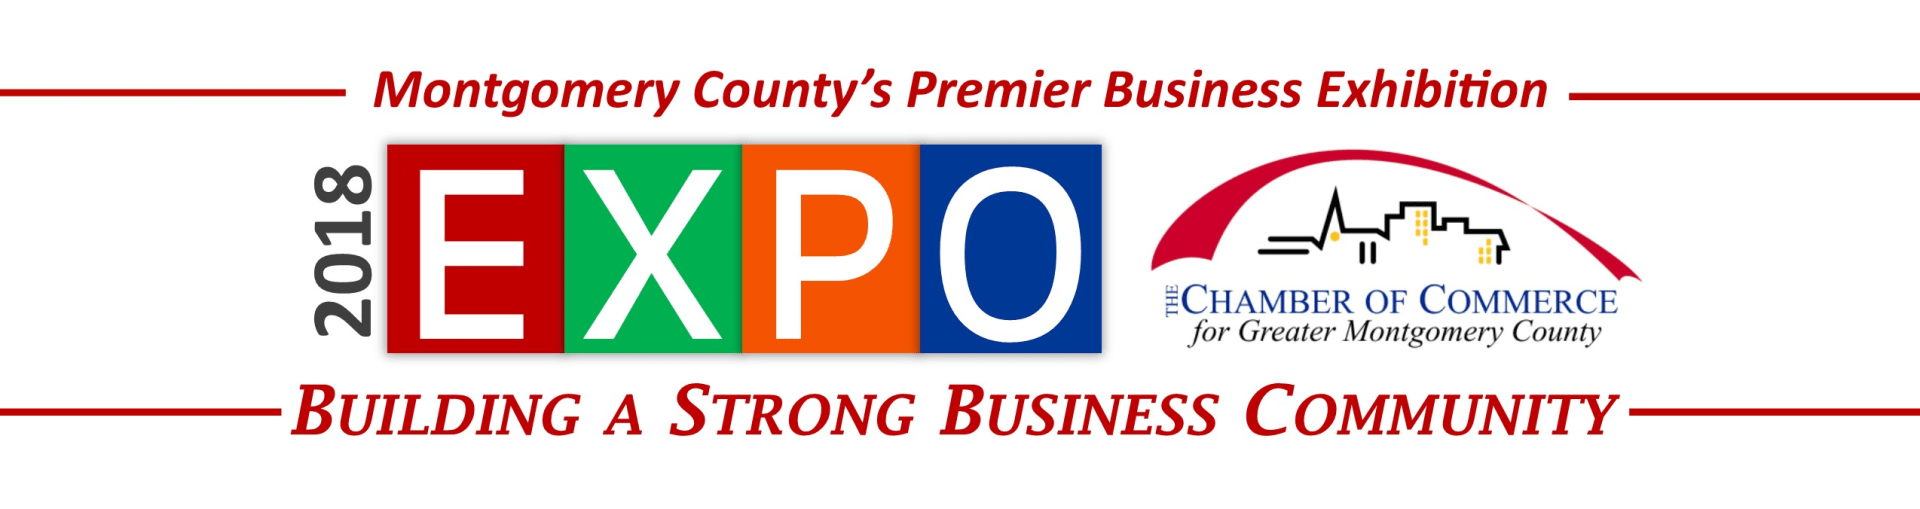 2018 Business Expo Lansdale North Wales Upper Gwynedd Souderton Harleysville Wissahickon Horsham Hatfield North Penn Spring House Chamber of Commerce for Greater Montgomery County PA